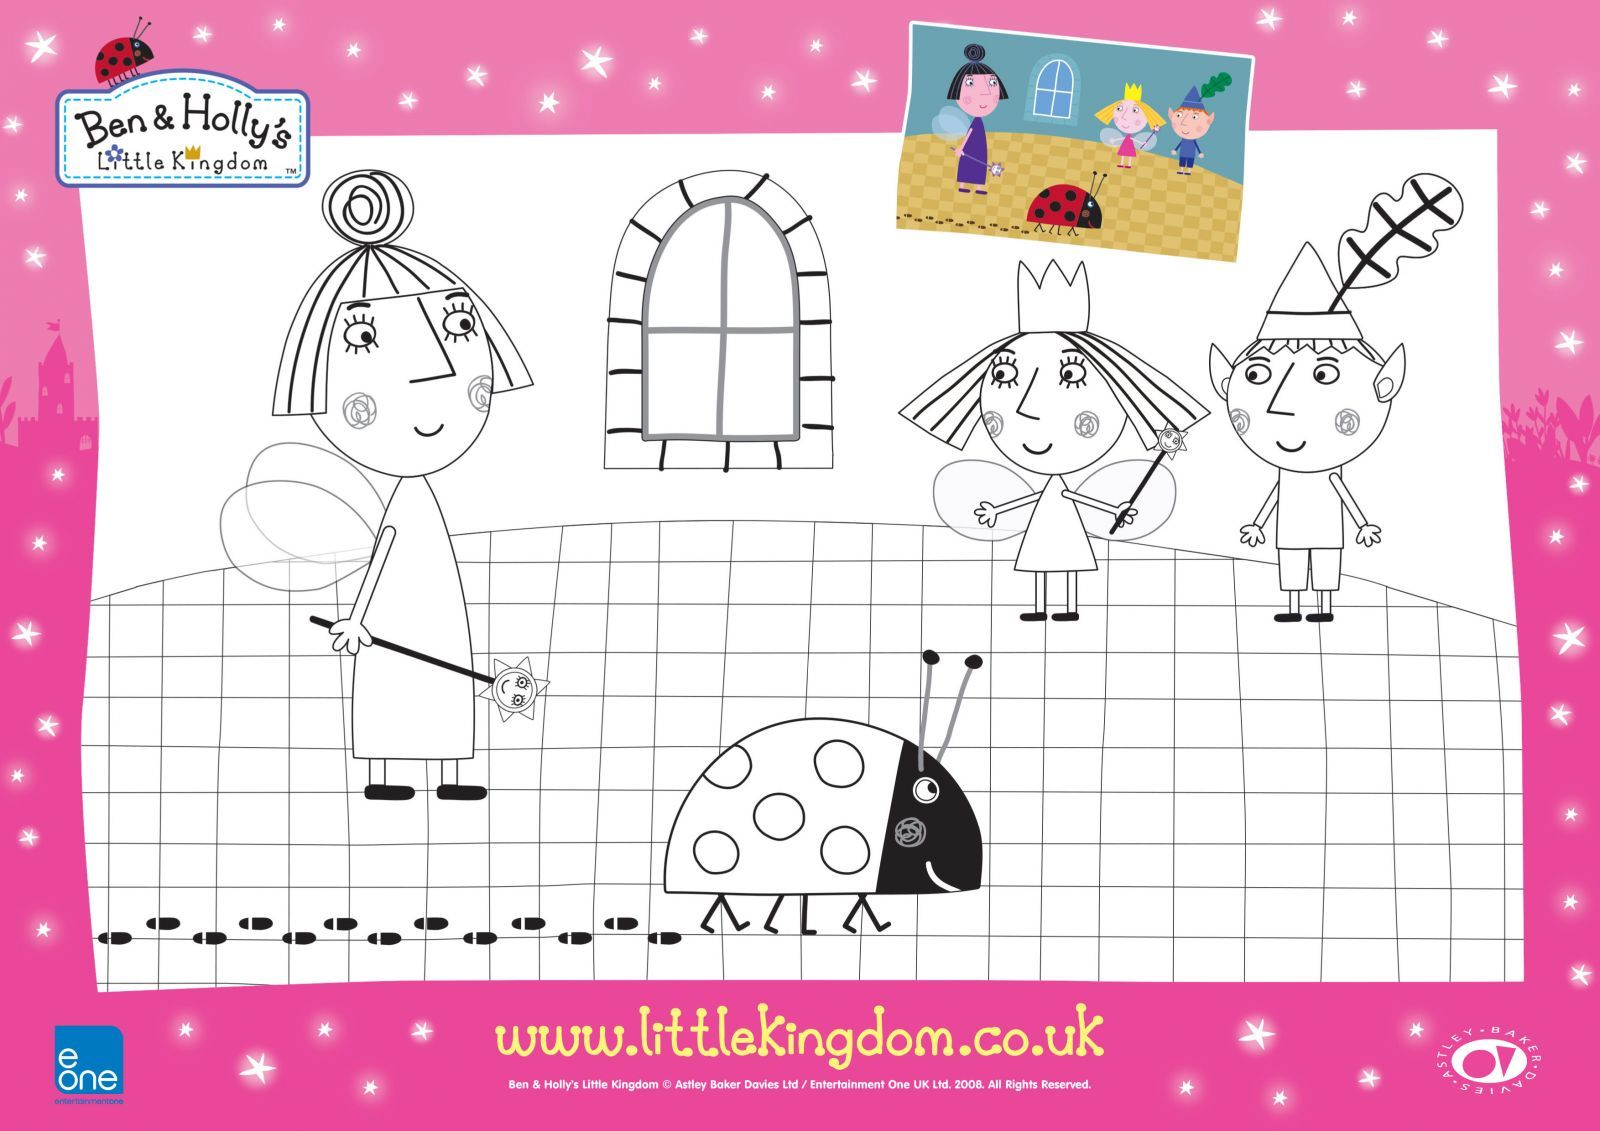 ben and holly downloadable fun uk mums tv coloring home